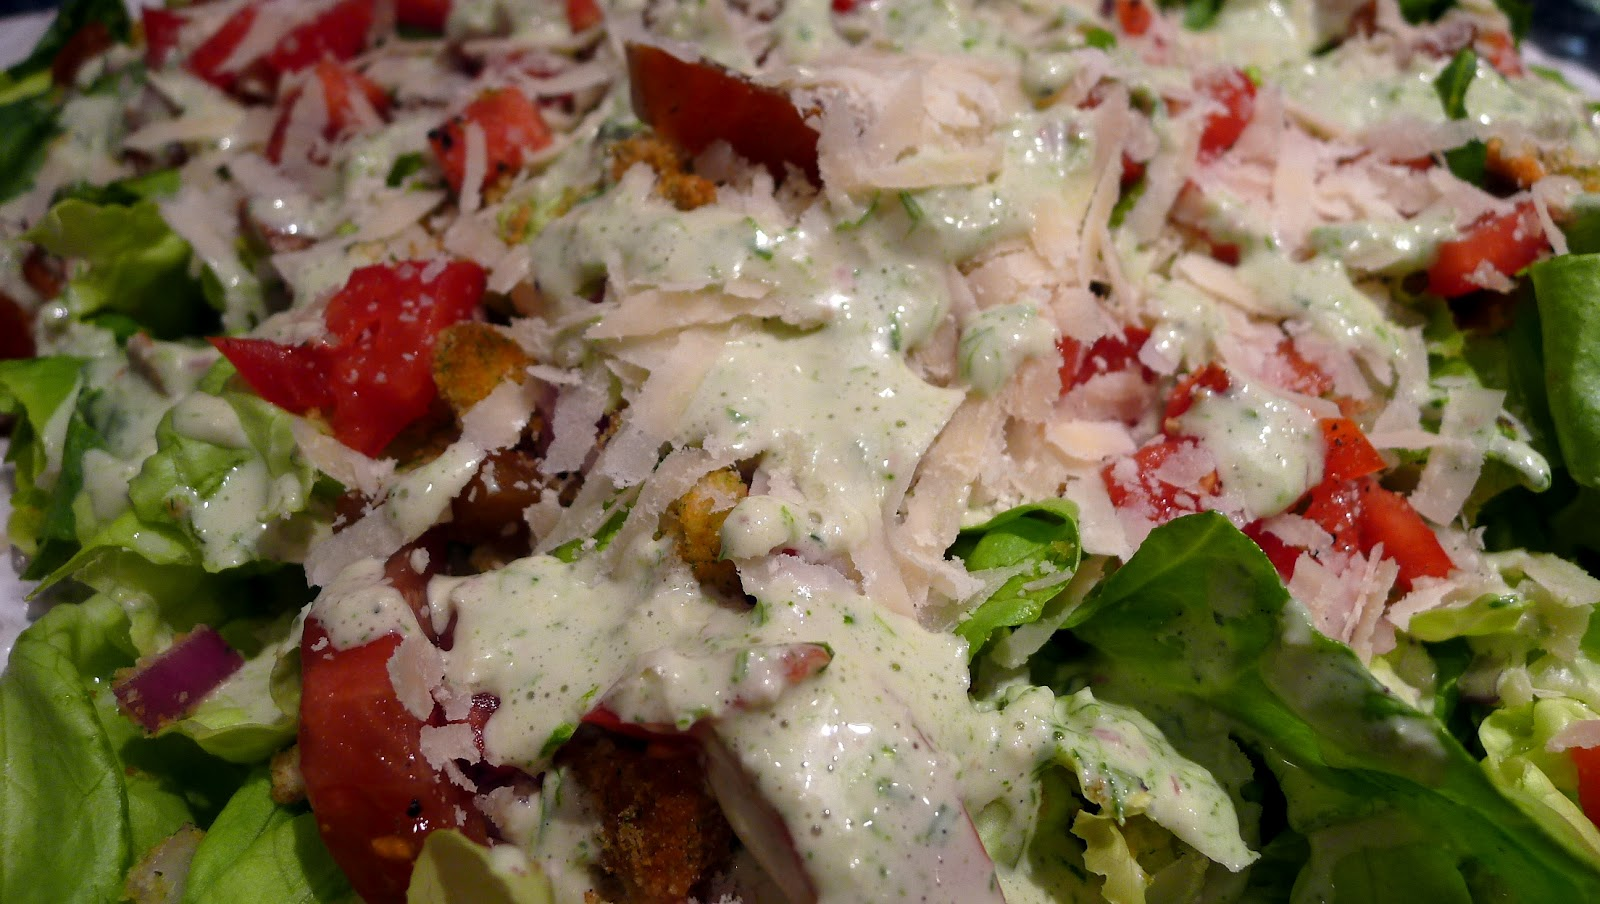 ... : Creamy Tarragon Dressed Butter Lettuce with Crumbled Croutons